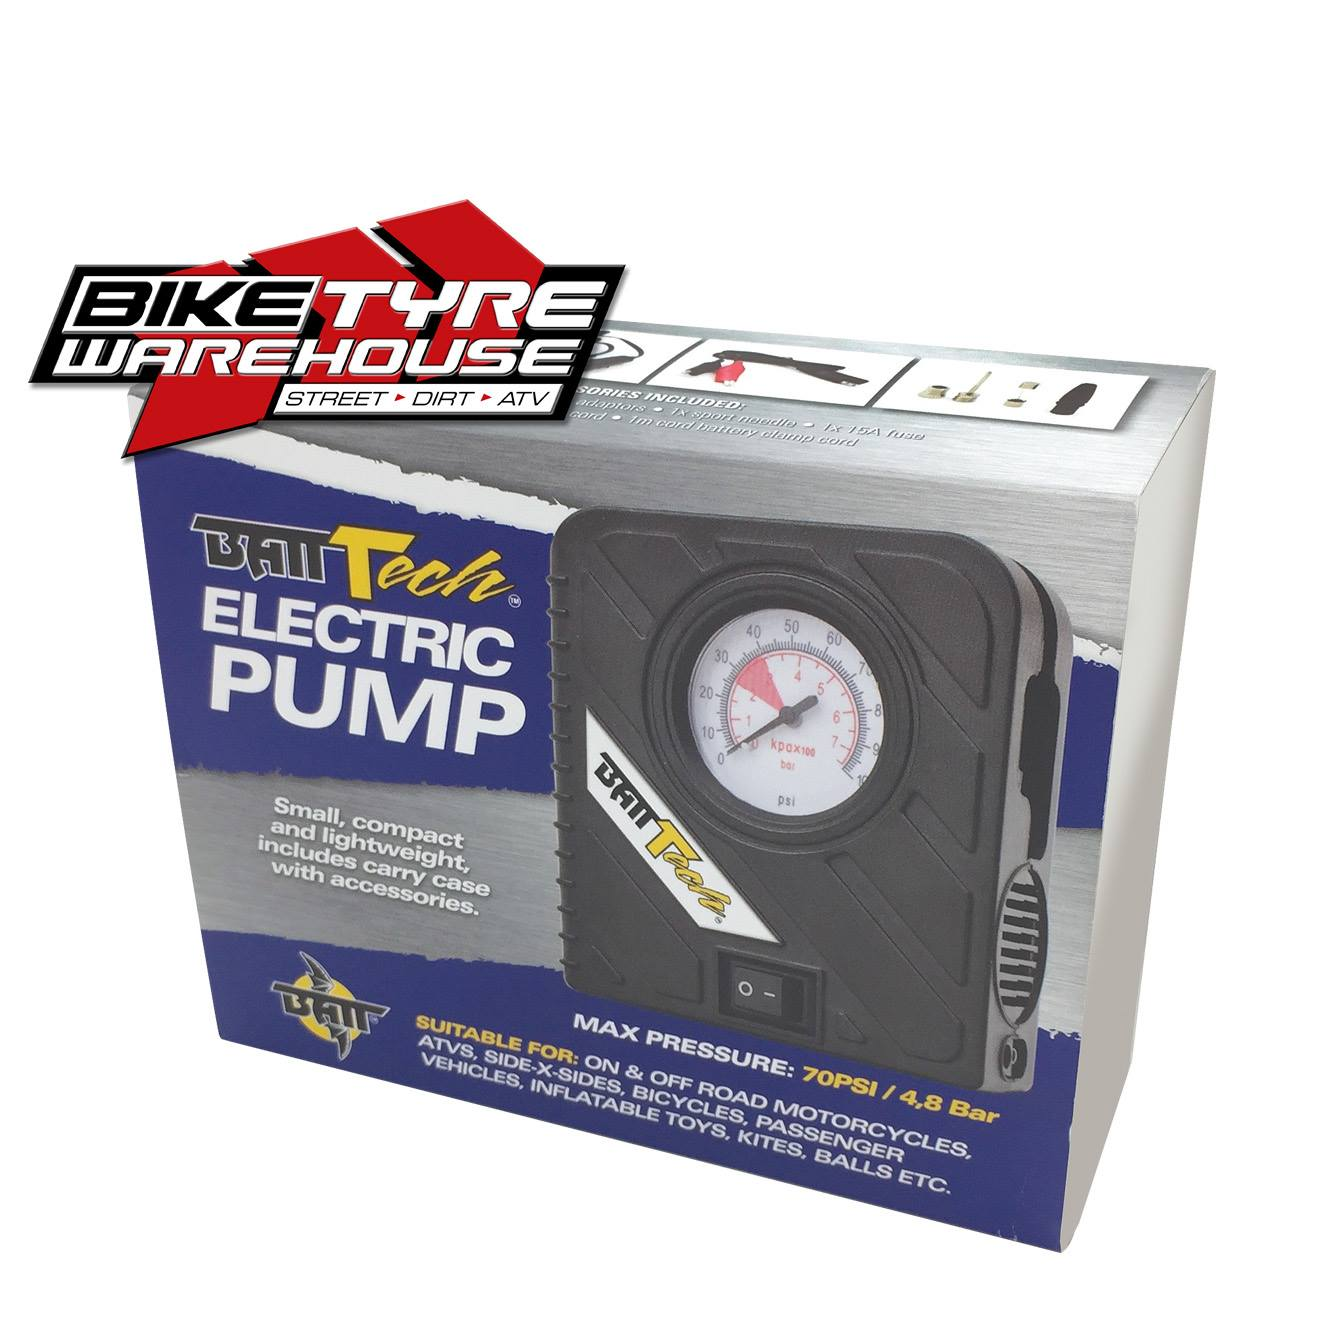 BATT TECH ELECTRIC PUMP Bike Tyre Warehouse